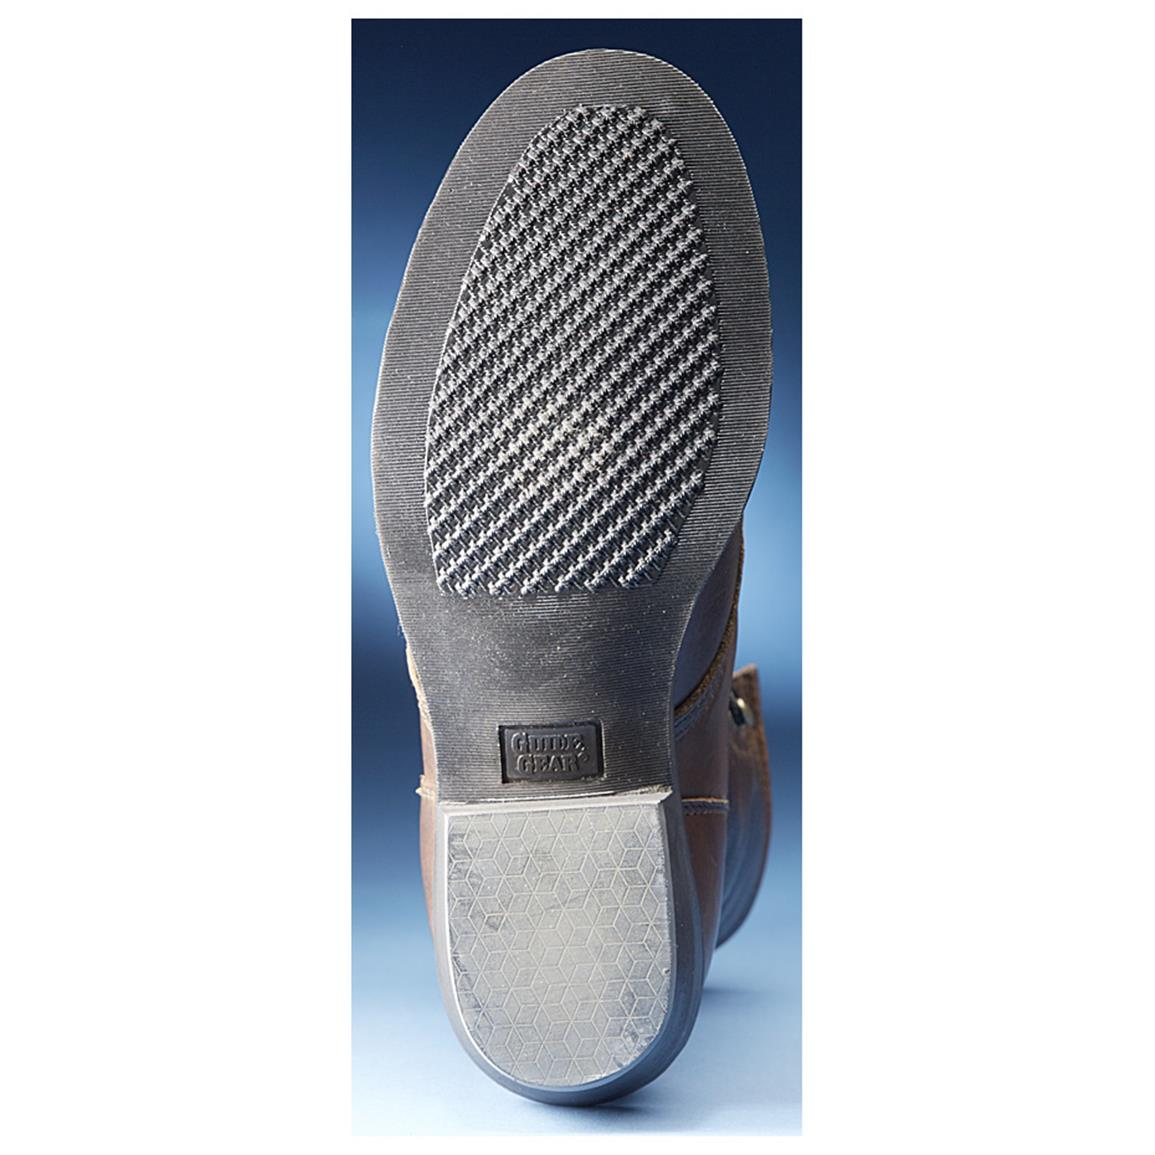 Long-wearing, sure-traction rubber outsole